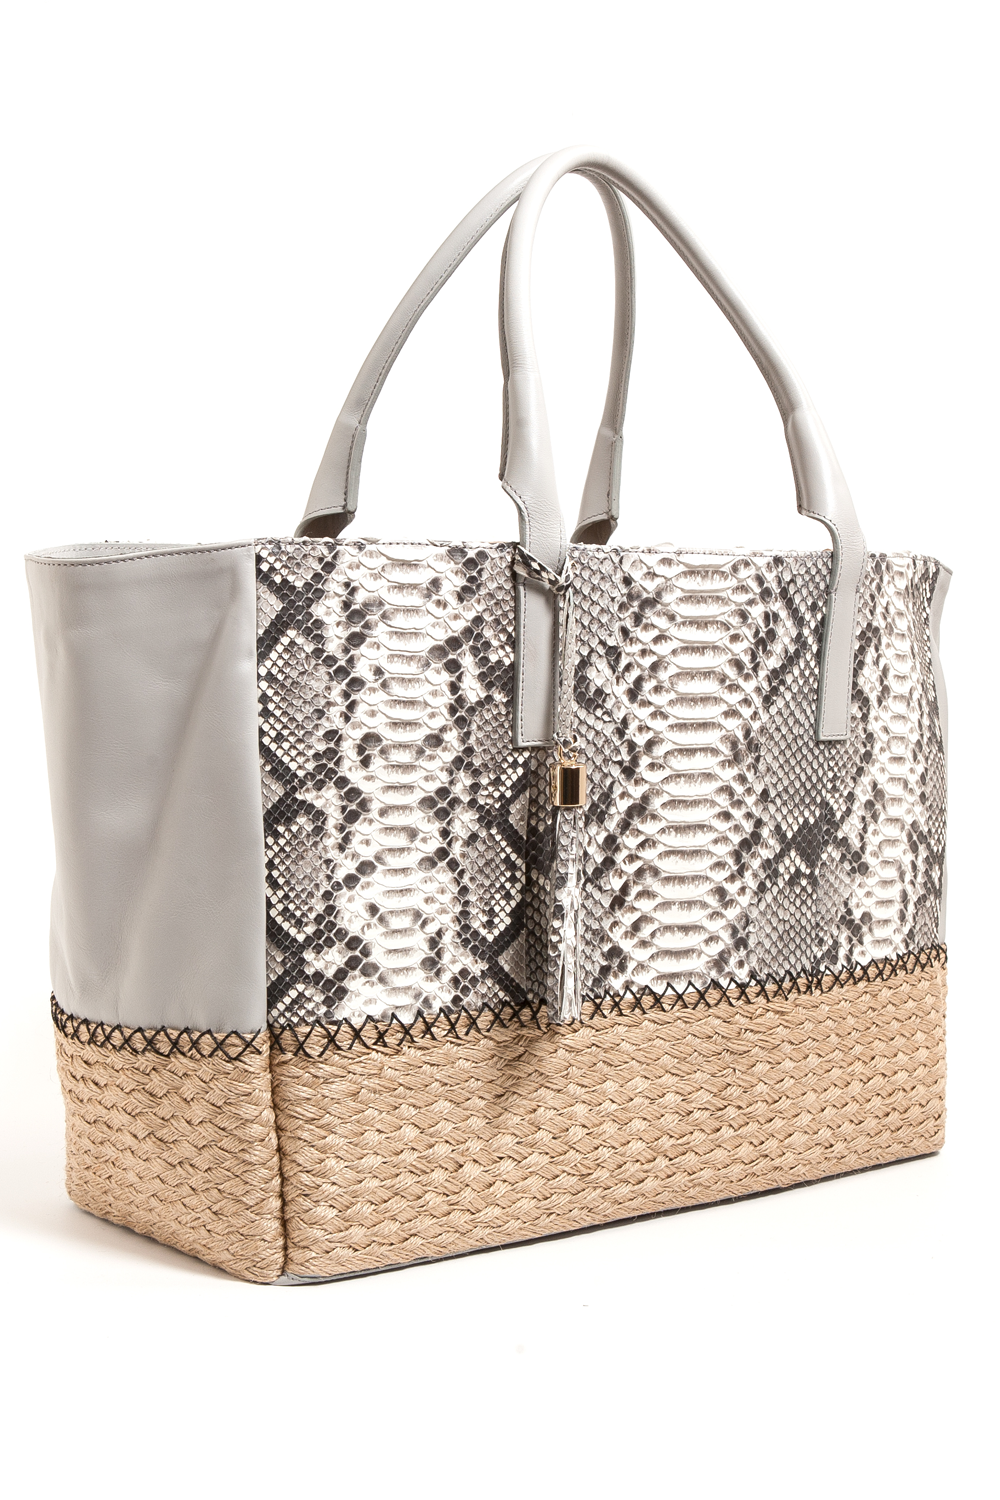 Mel Boteri | Harbor Grey Python Leather & Espadrille 'Ellis' Tote | Side View